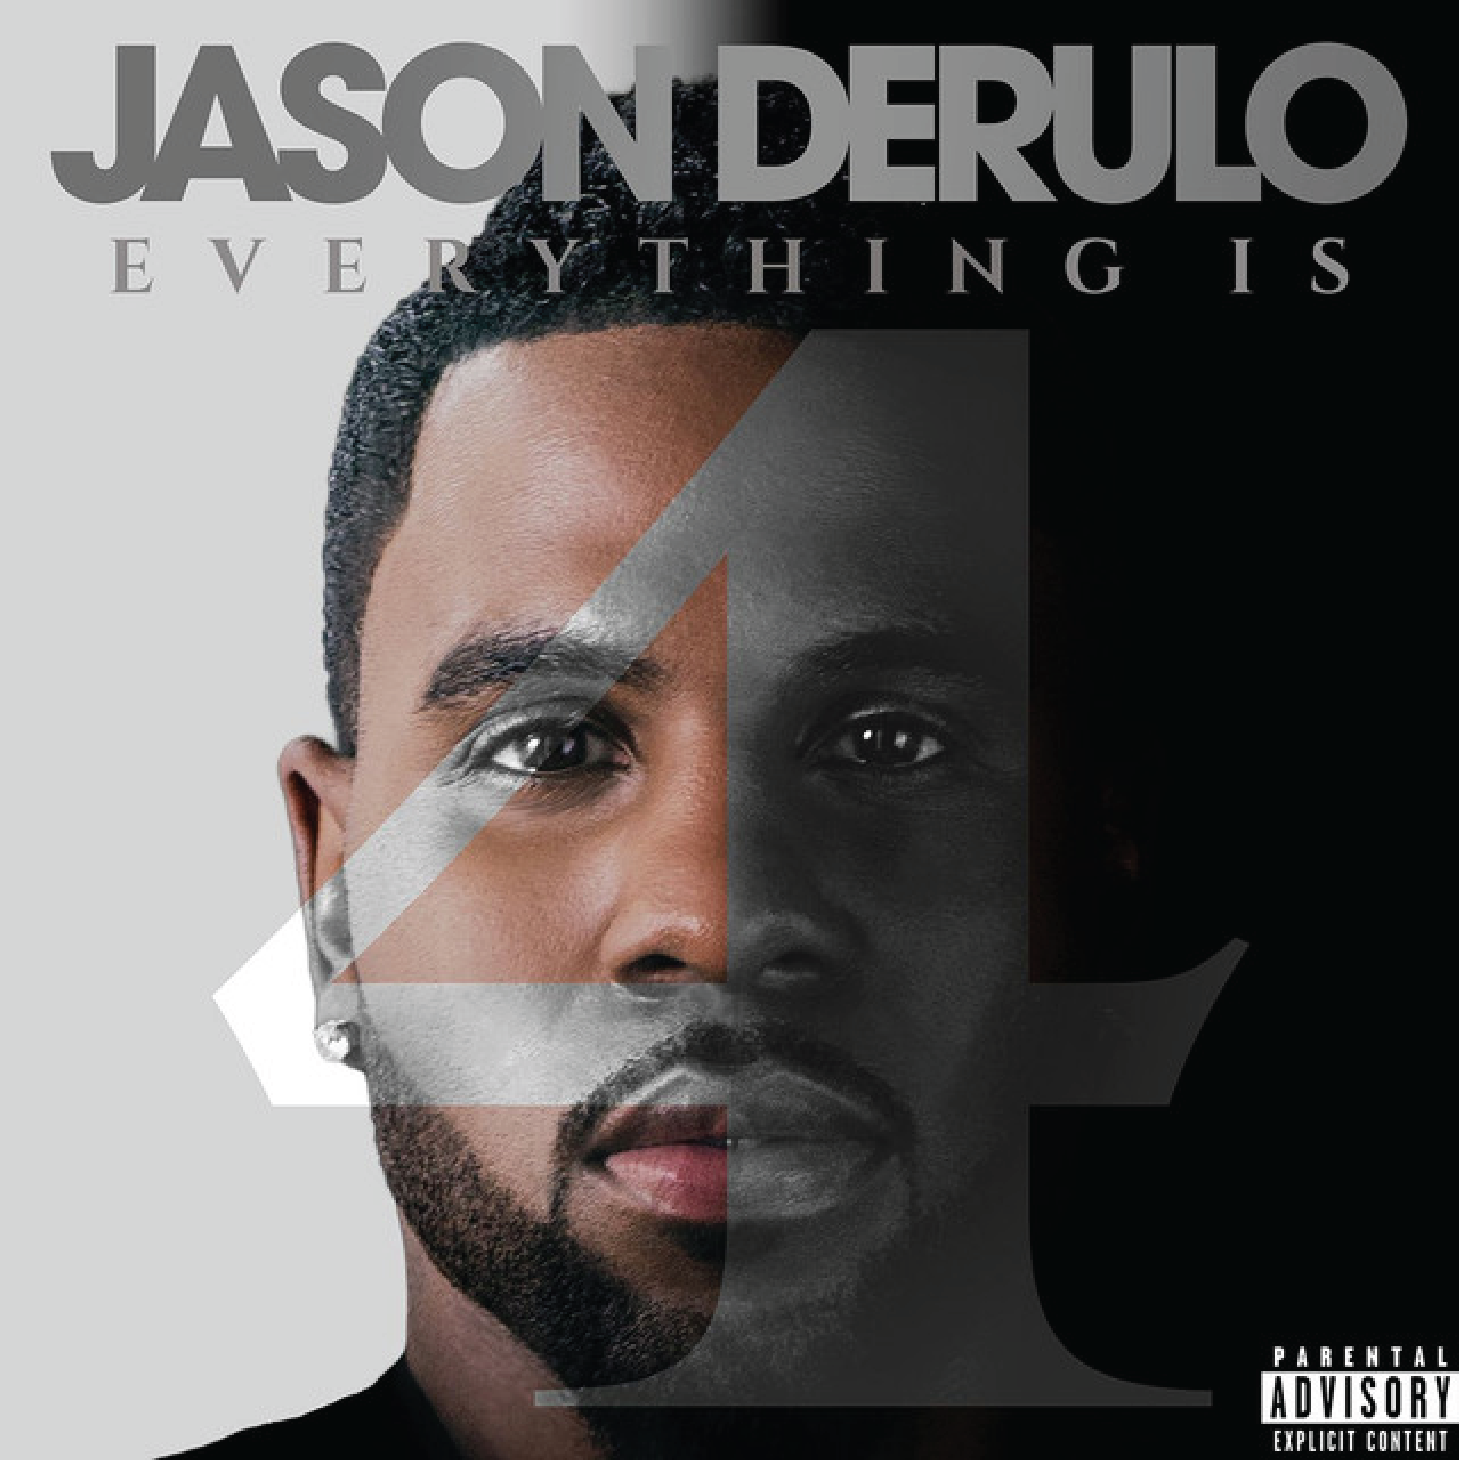 Music Thumbnails 1916_2_everything is 4 jason derulo.png